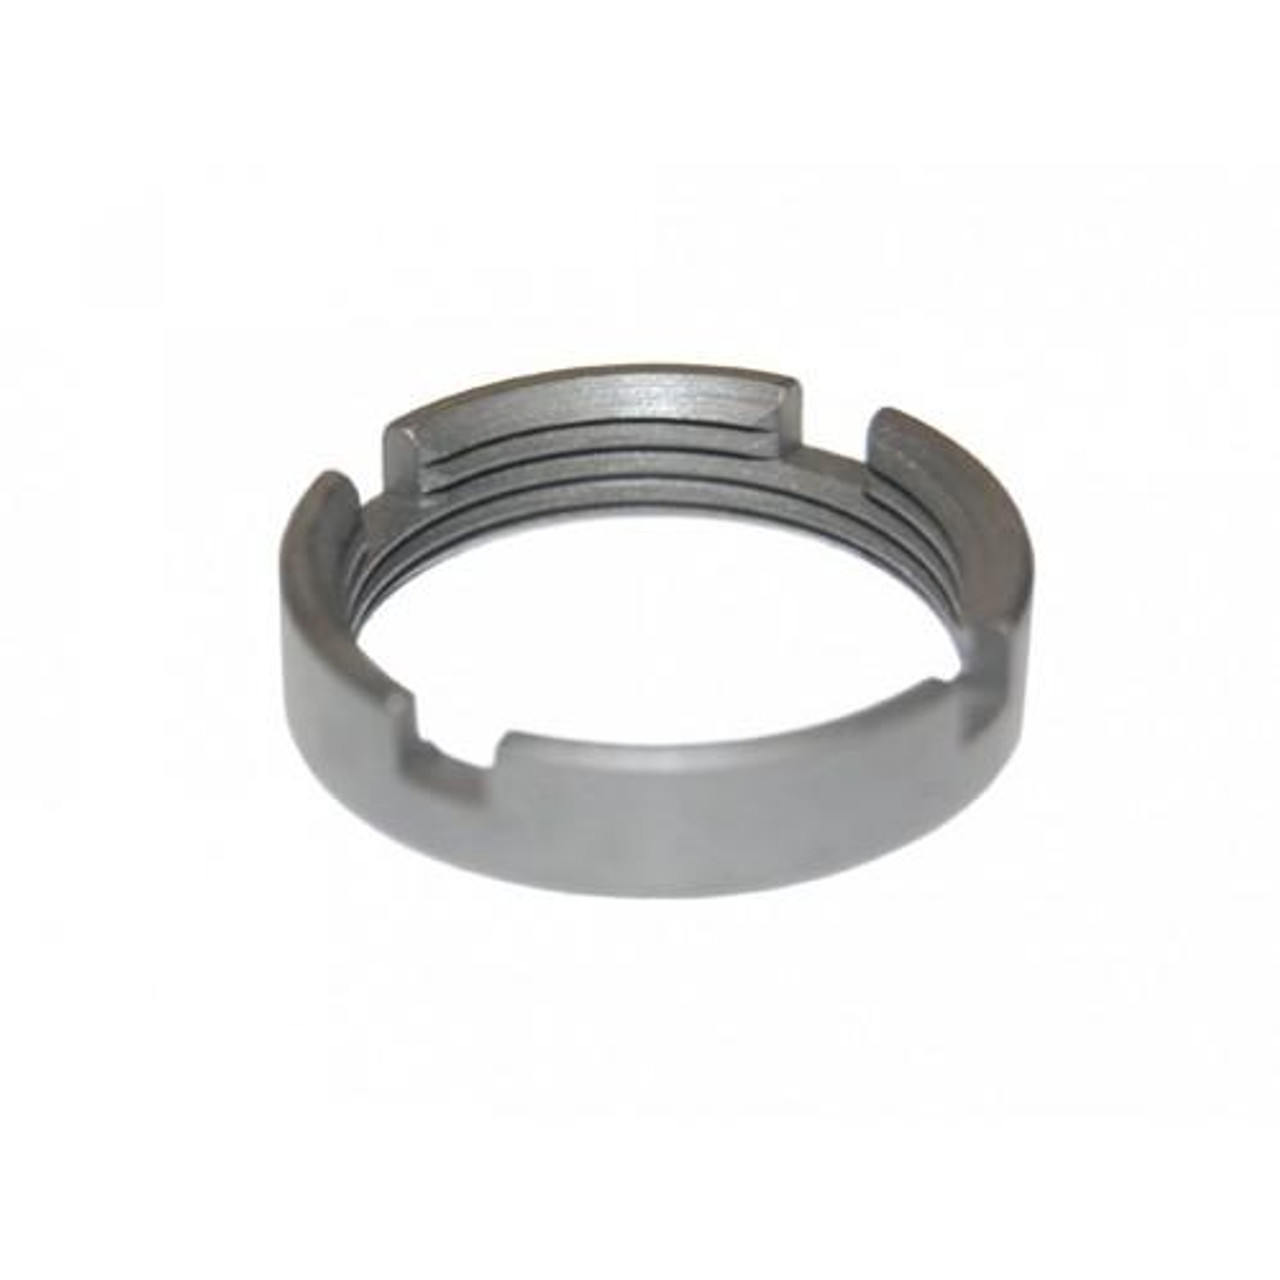 MDX Arms Castle Nut for Carbine Receiver Tube